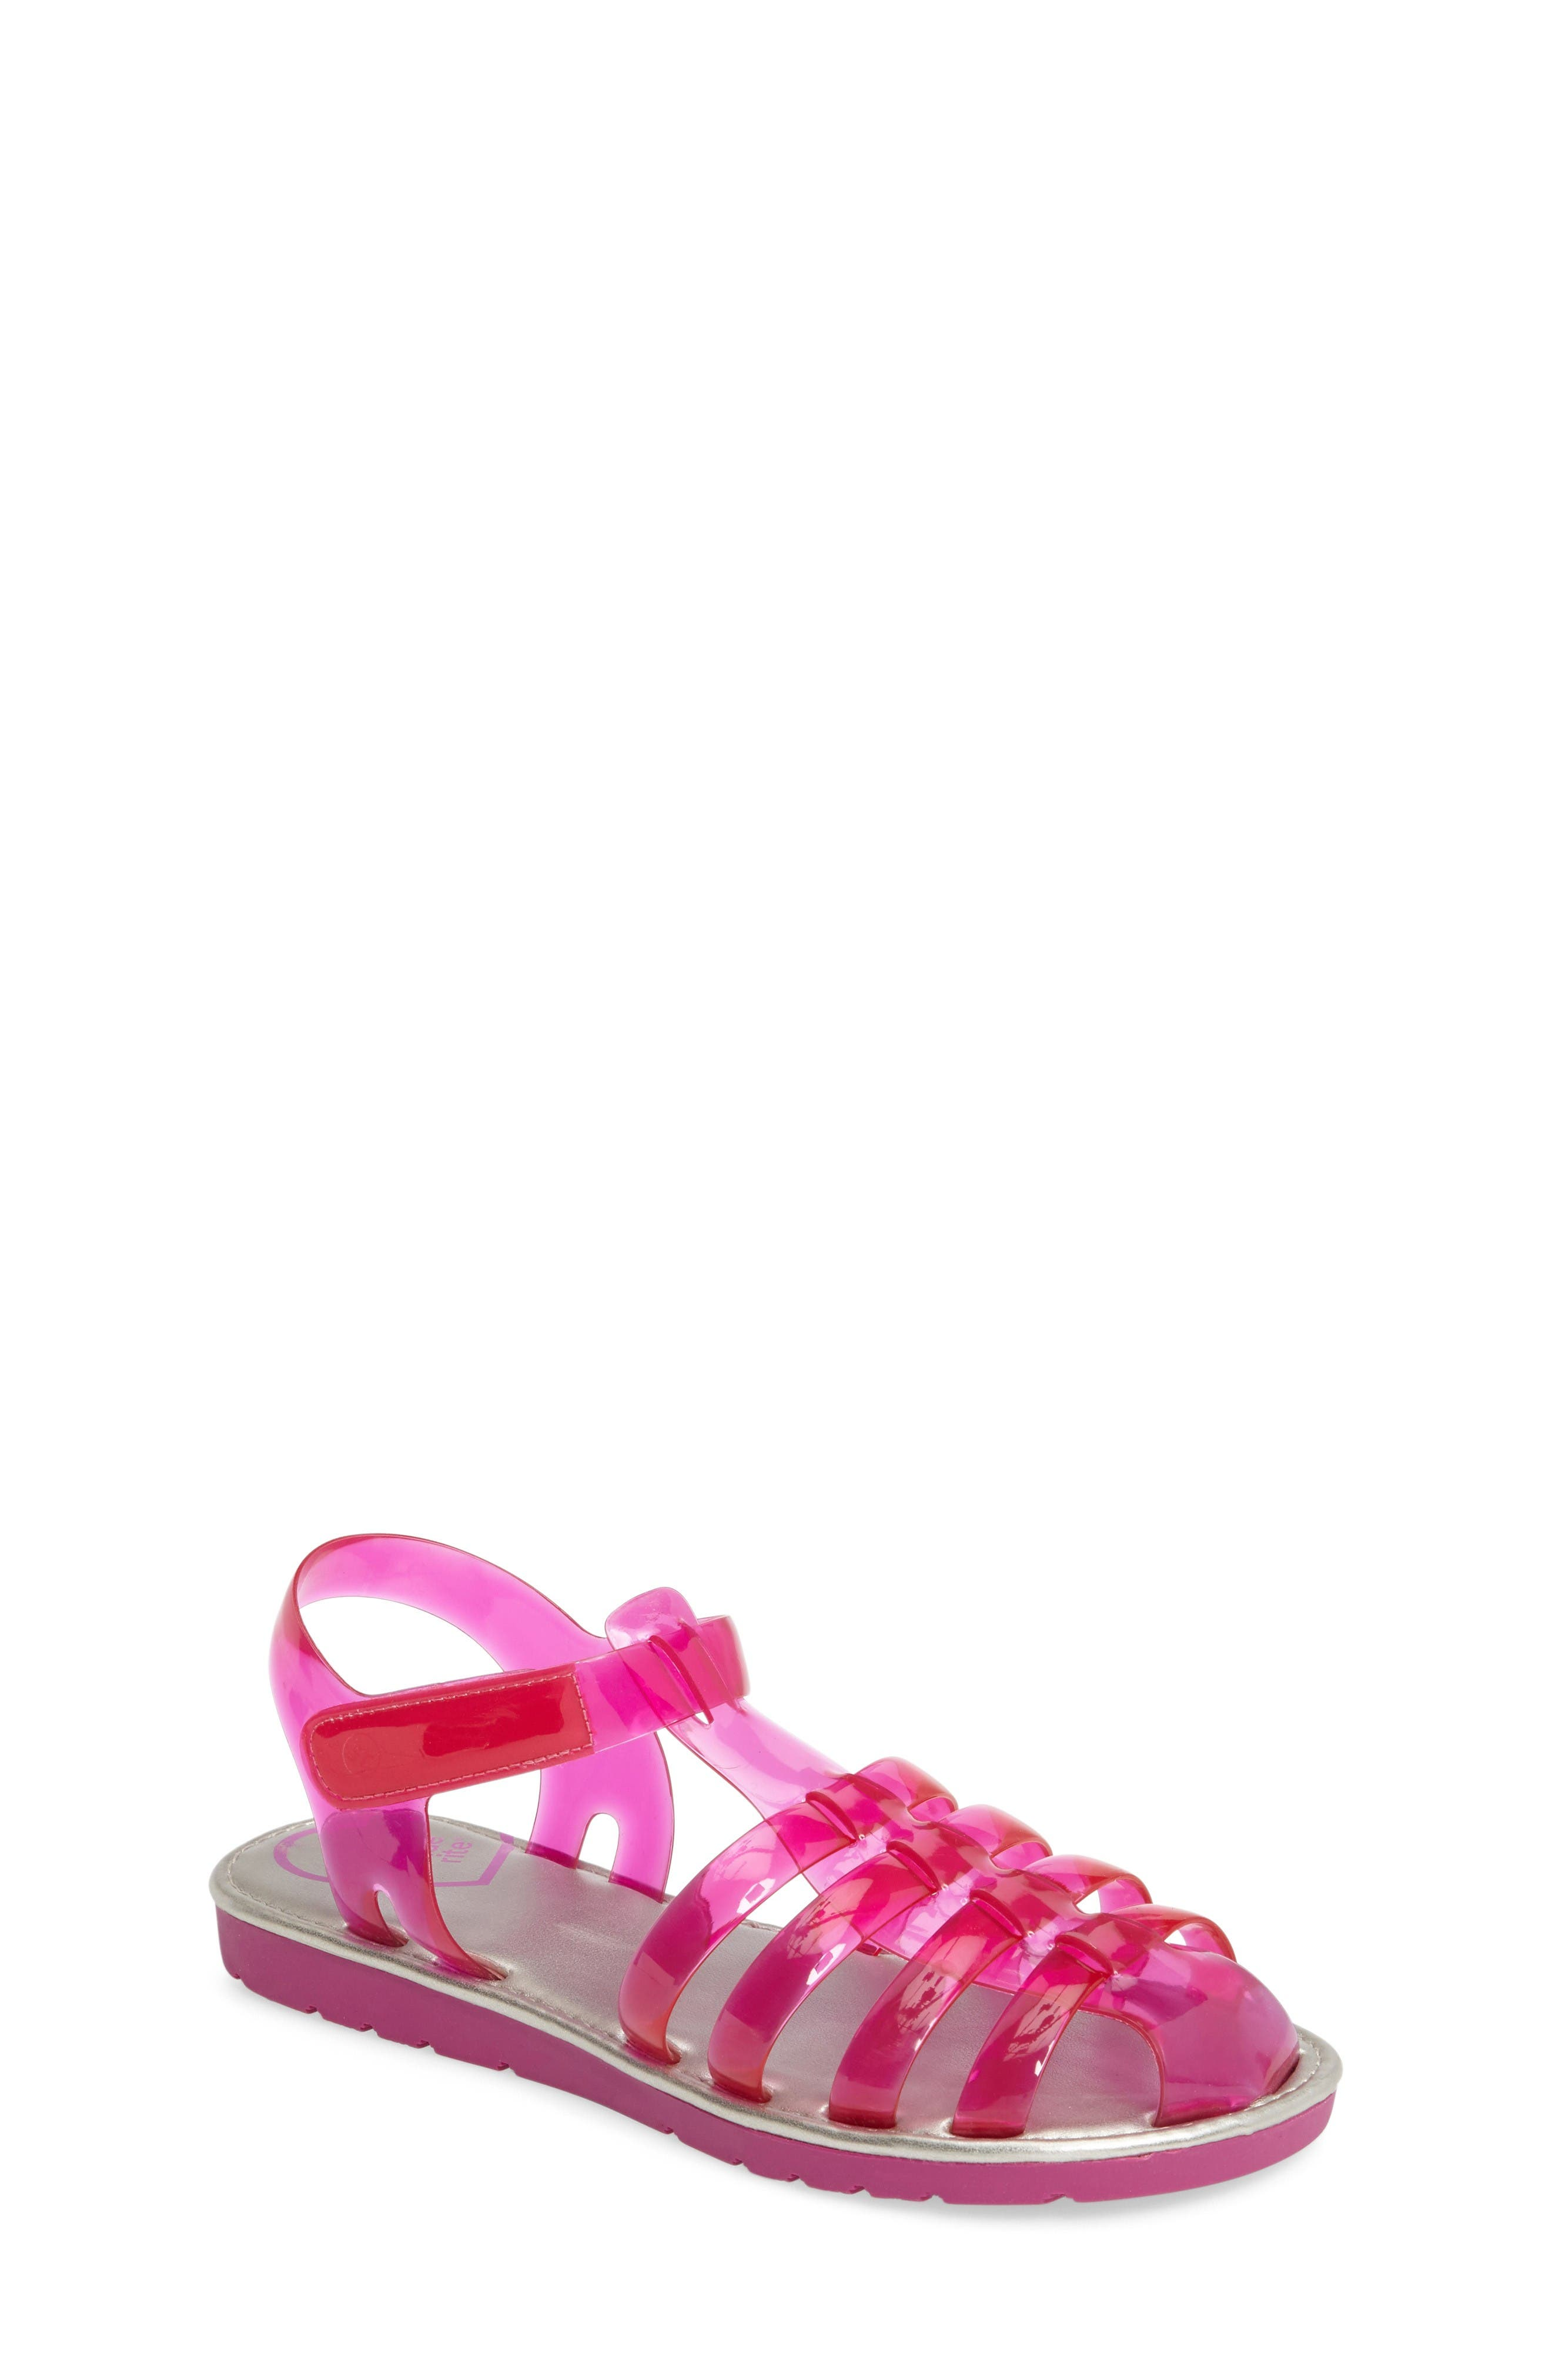 Natalie Jelly Sandal,                             Main thumbnail 1, color,                             Magenta